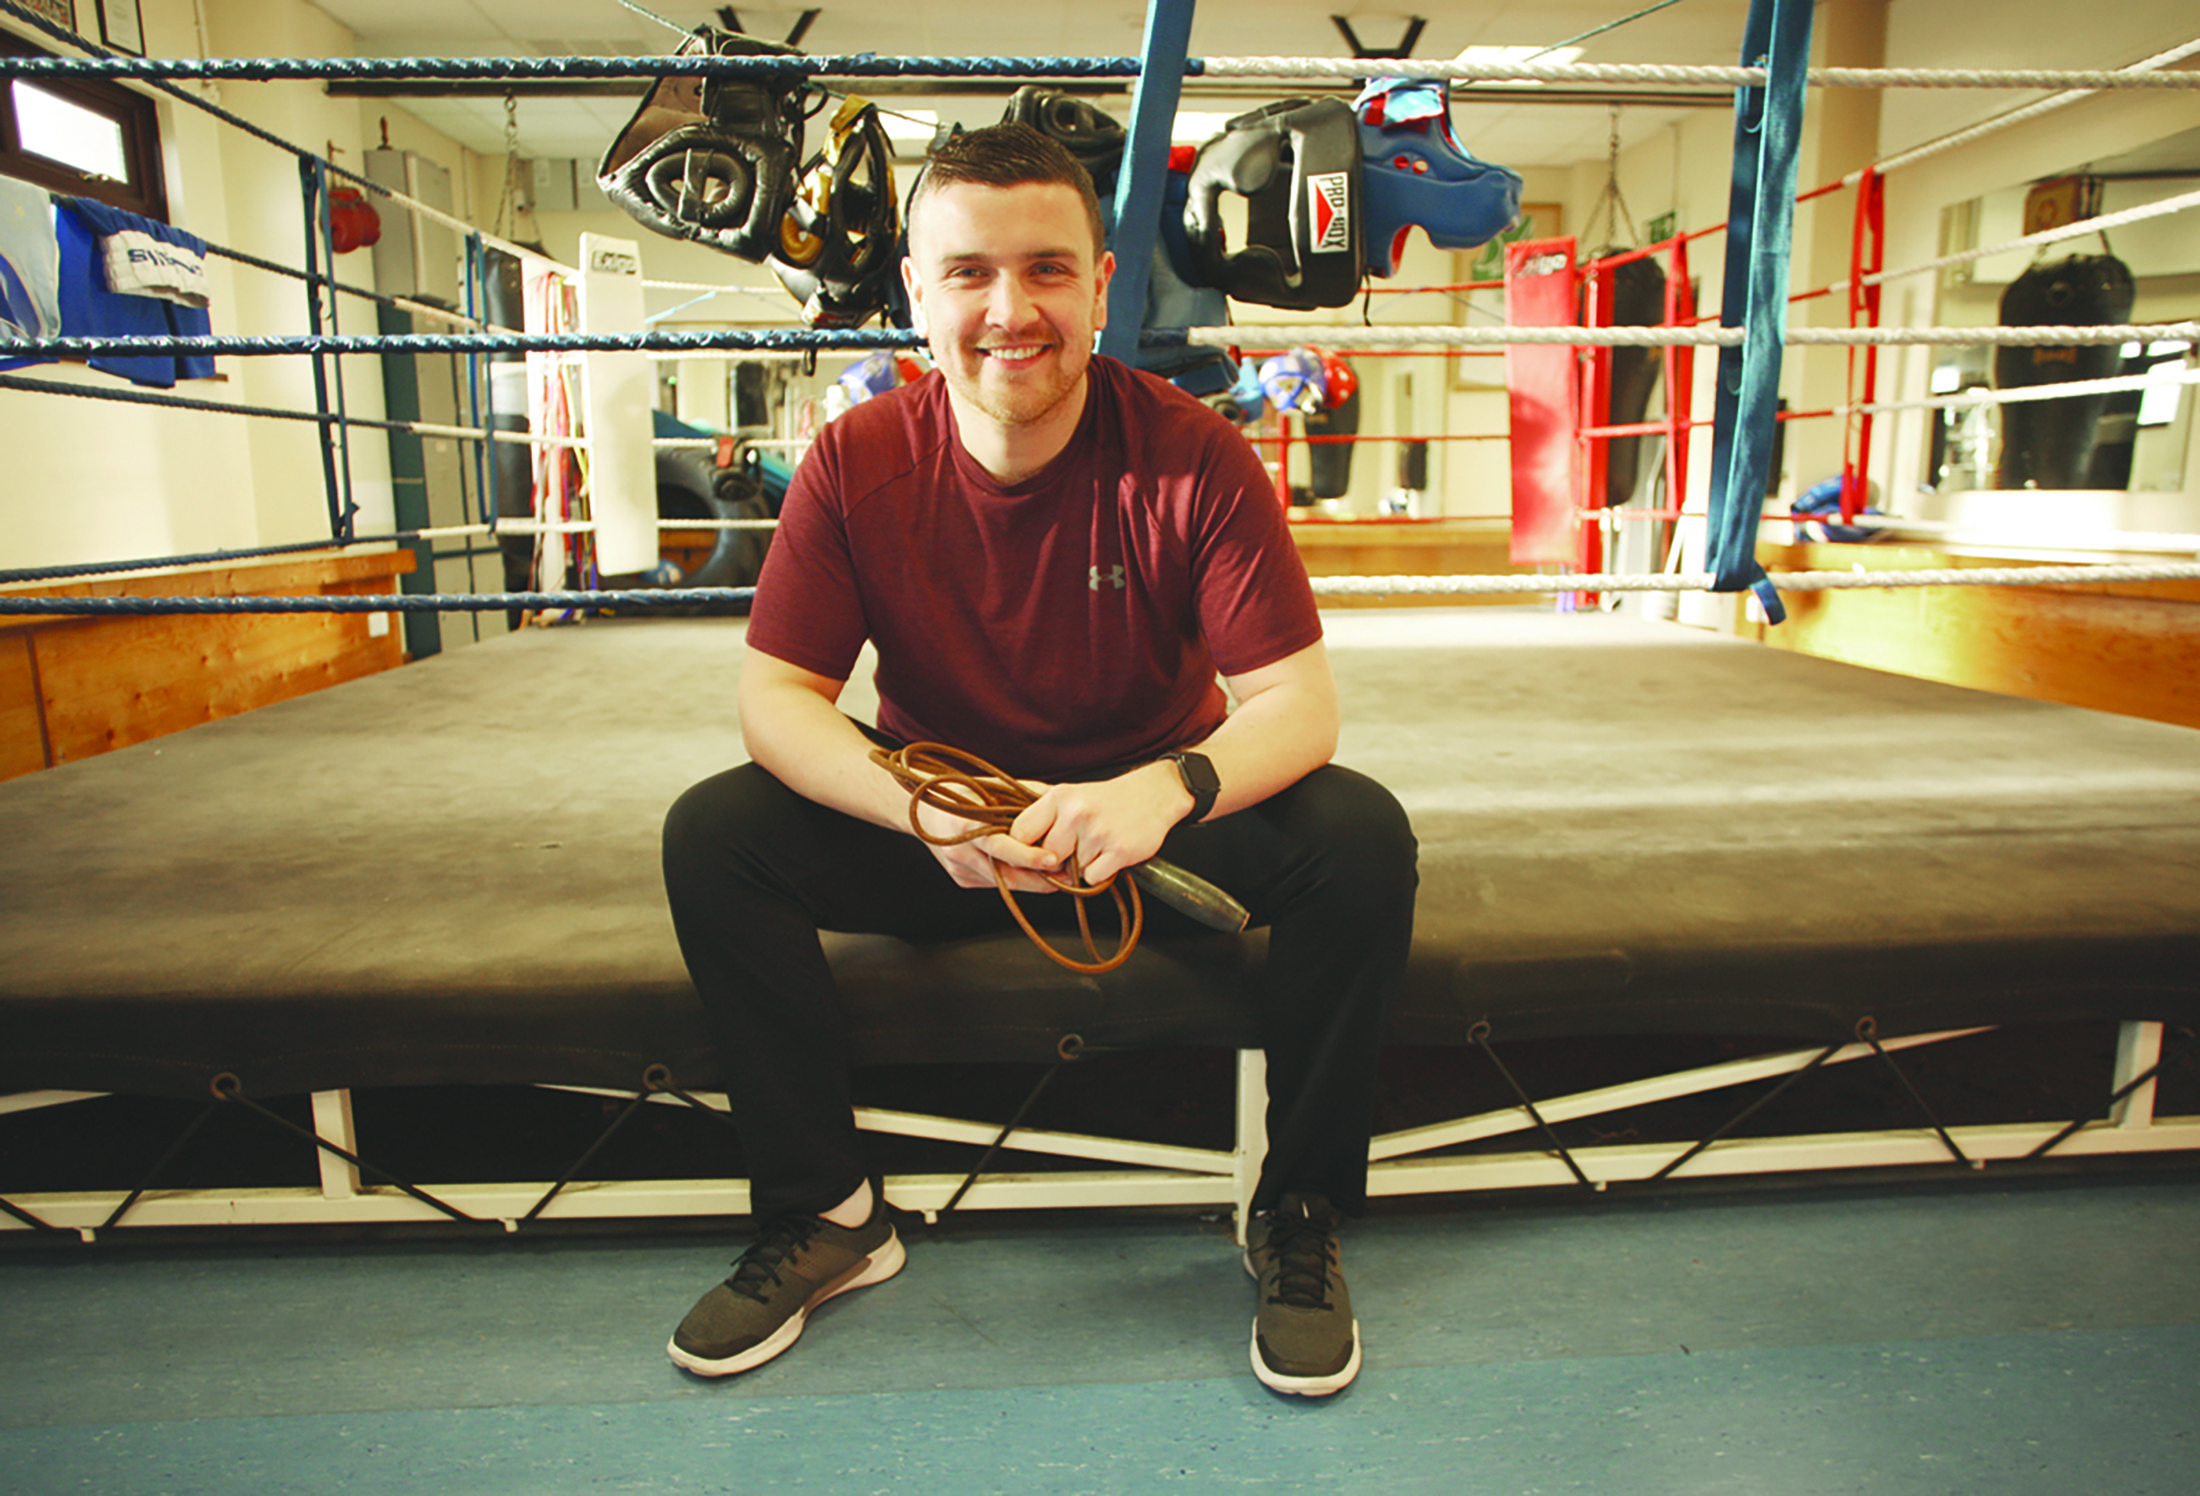 Ulster Council CPO and Star ABC coach Liam Corr doesn't believe boxing clubs can reopen until there is certainty over the return of full contact training and competitions